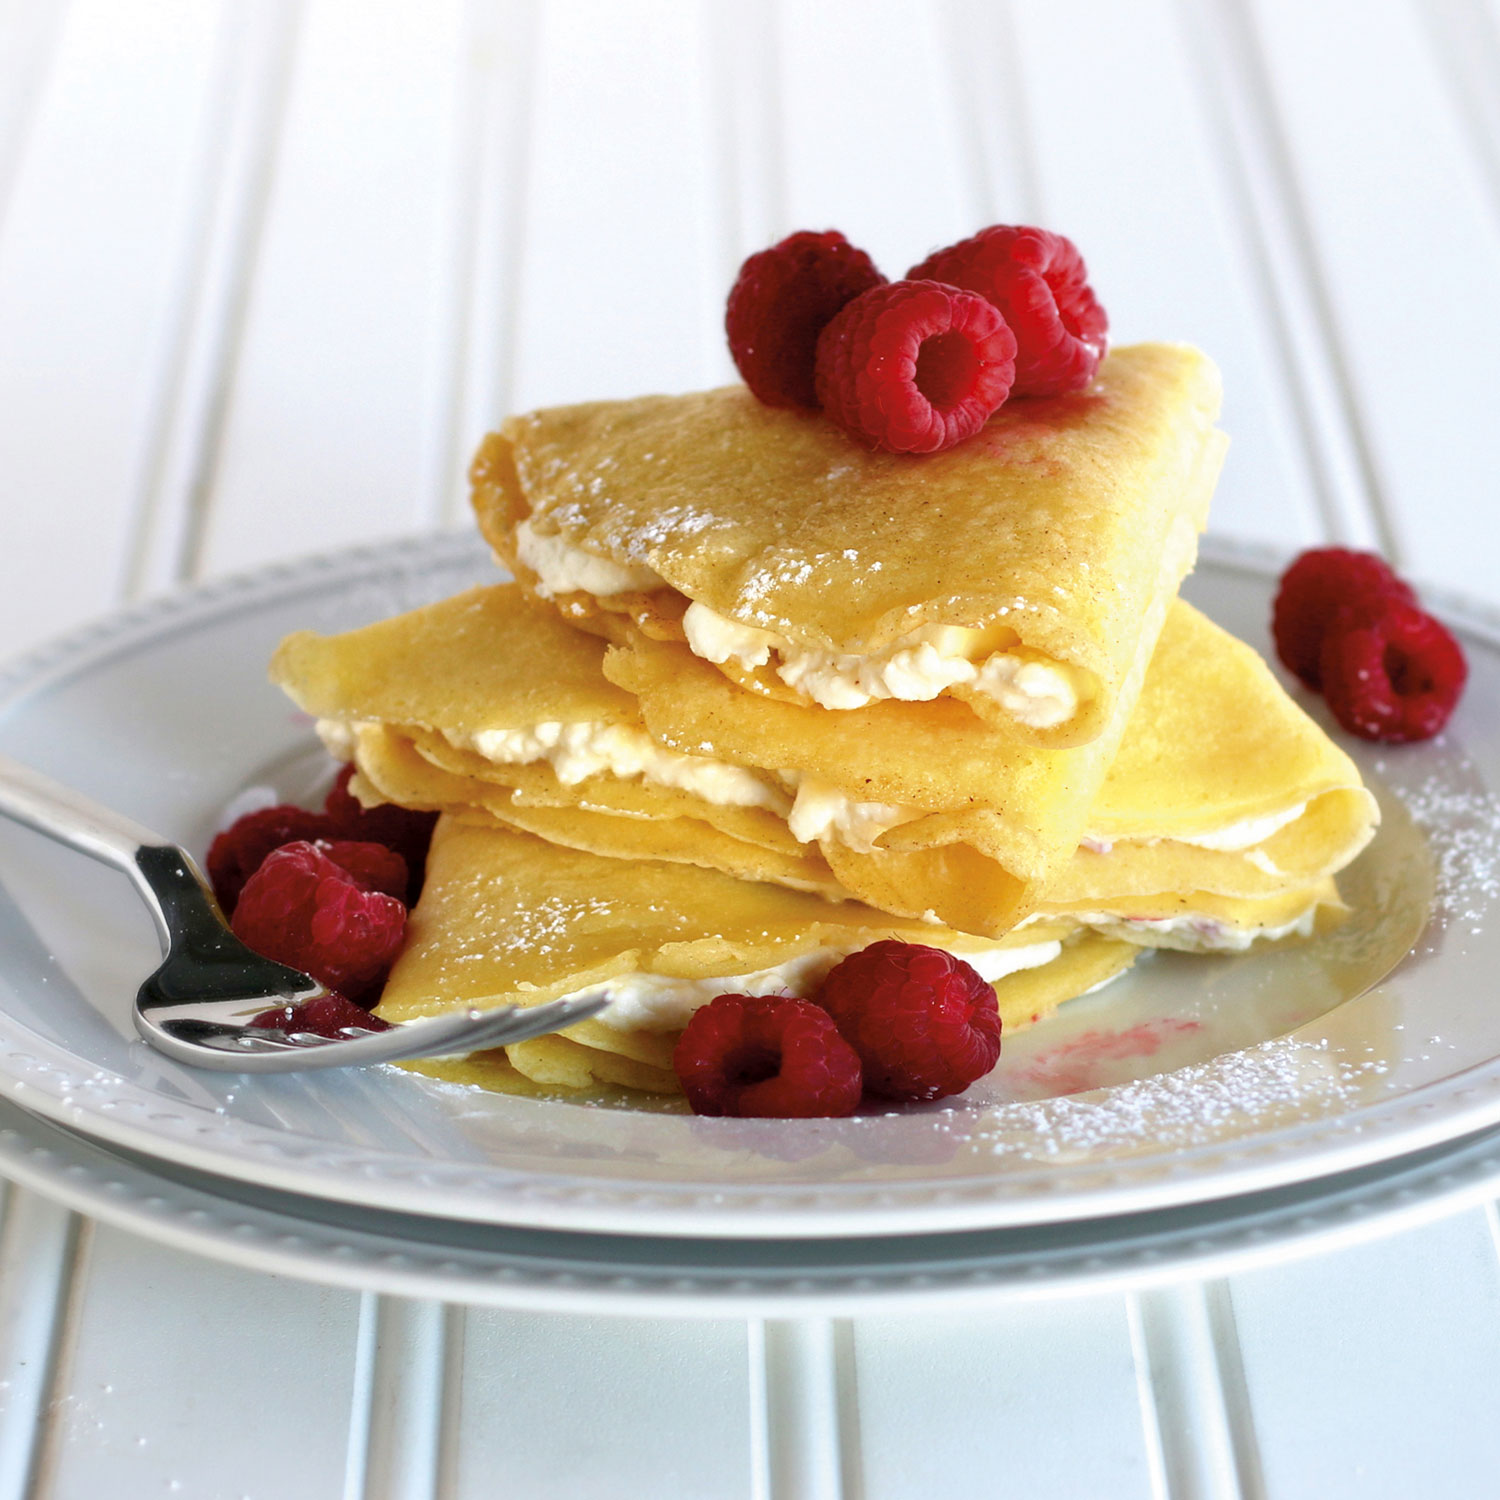 Raspberry Ricotta Crepes - 1